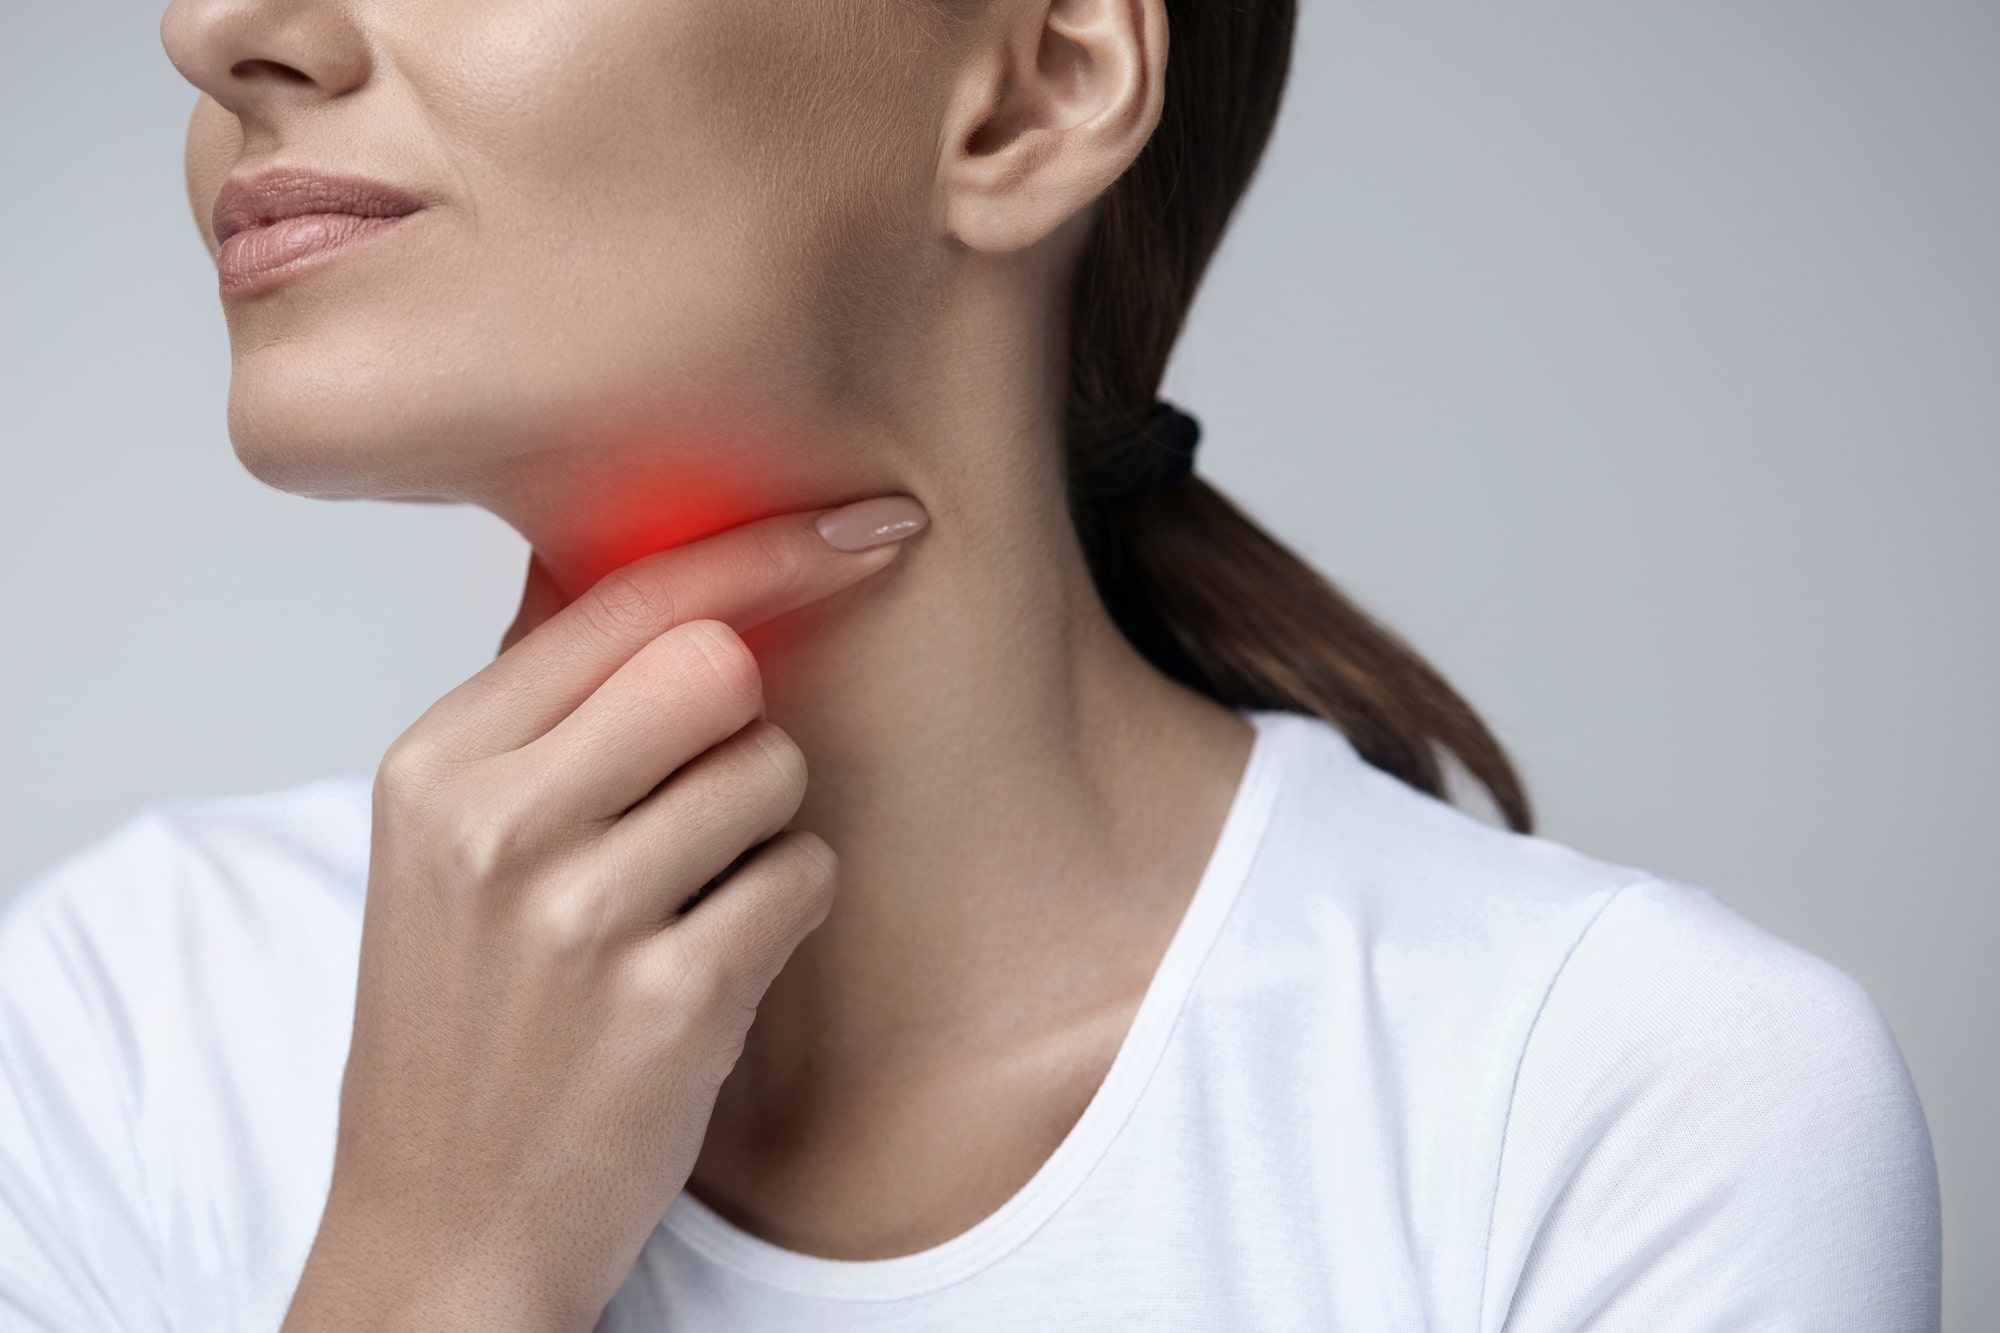 Most Common Throat Problems - Causes and Treatment